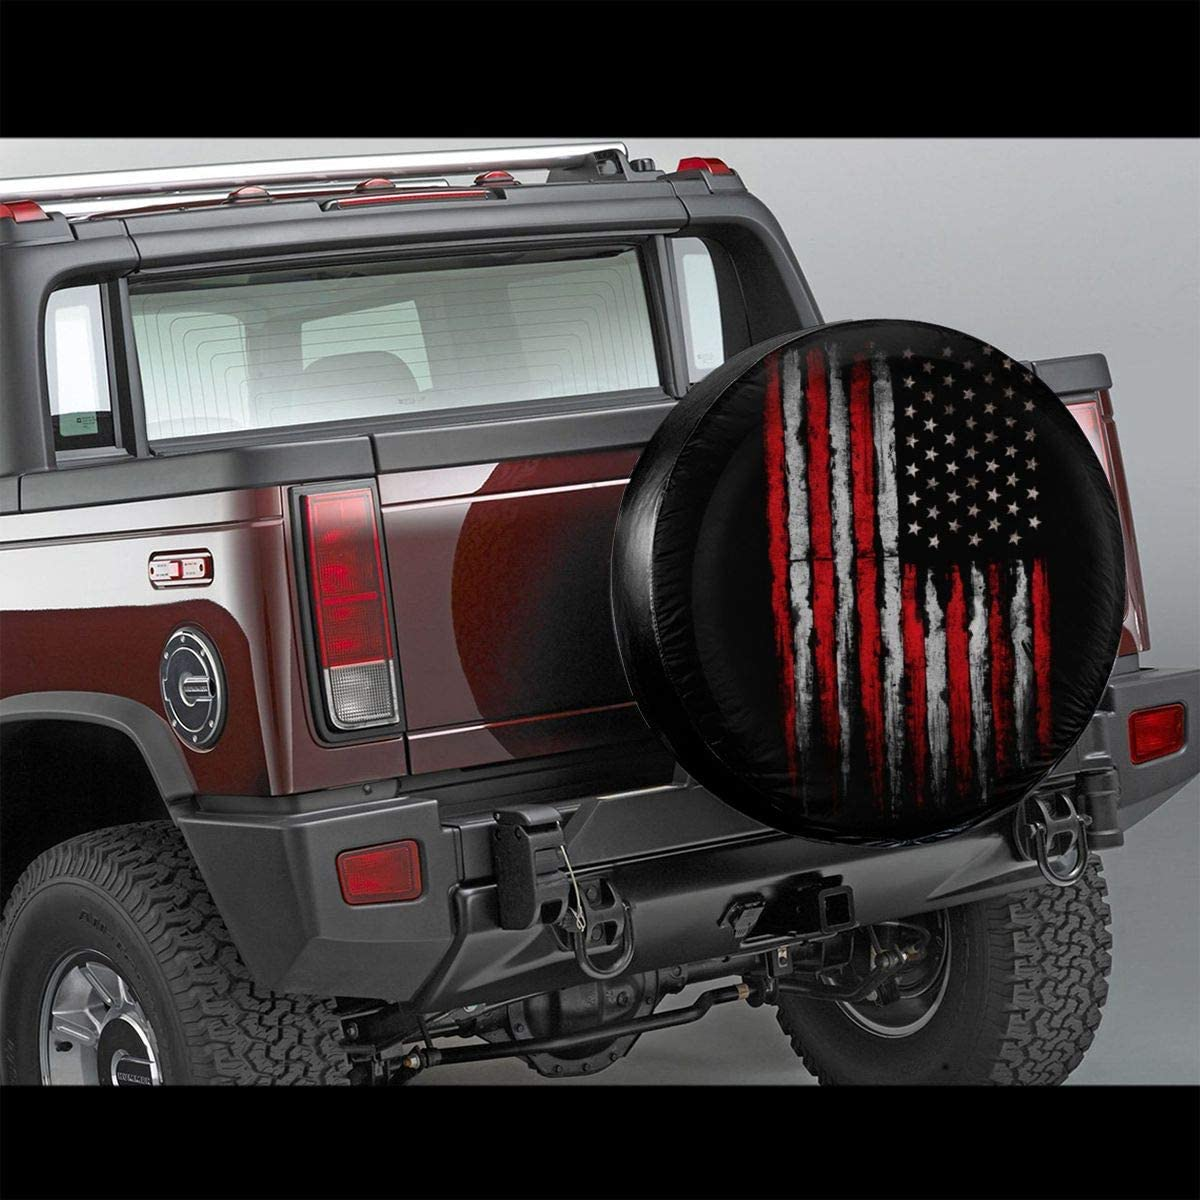 SUV Trailer Accessories15(Diameter 27-29 Becmd Red White Grunge American Flag Universal Spare Wheel Tire Cover Fit for Truck Camper Van,Jeep,Trailer RV